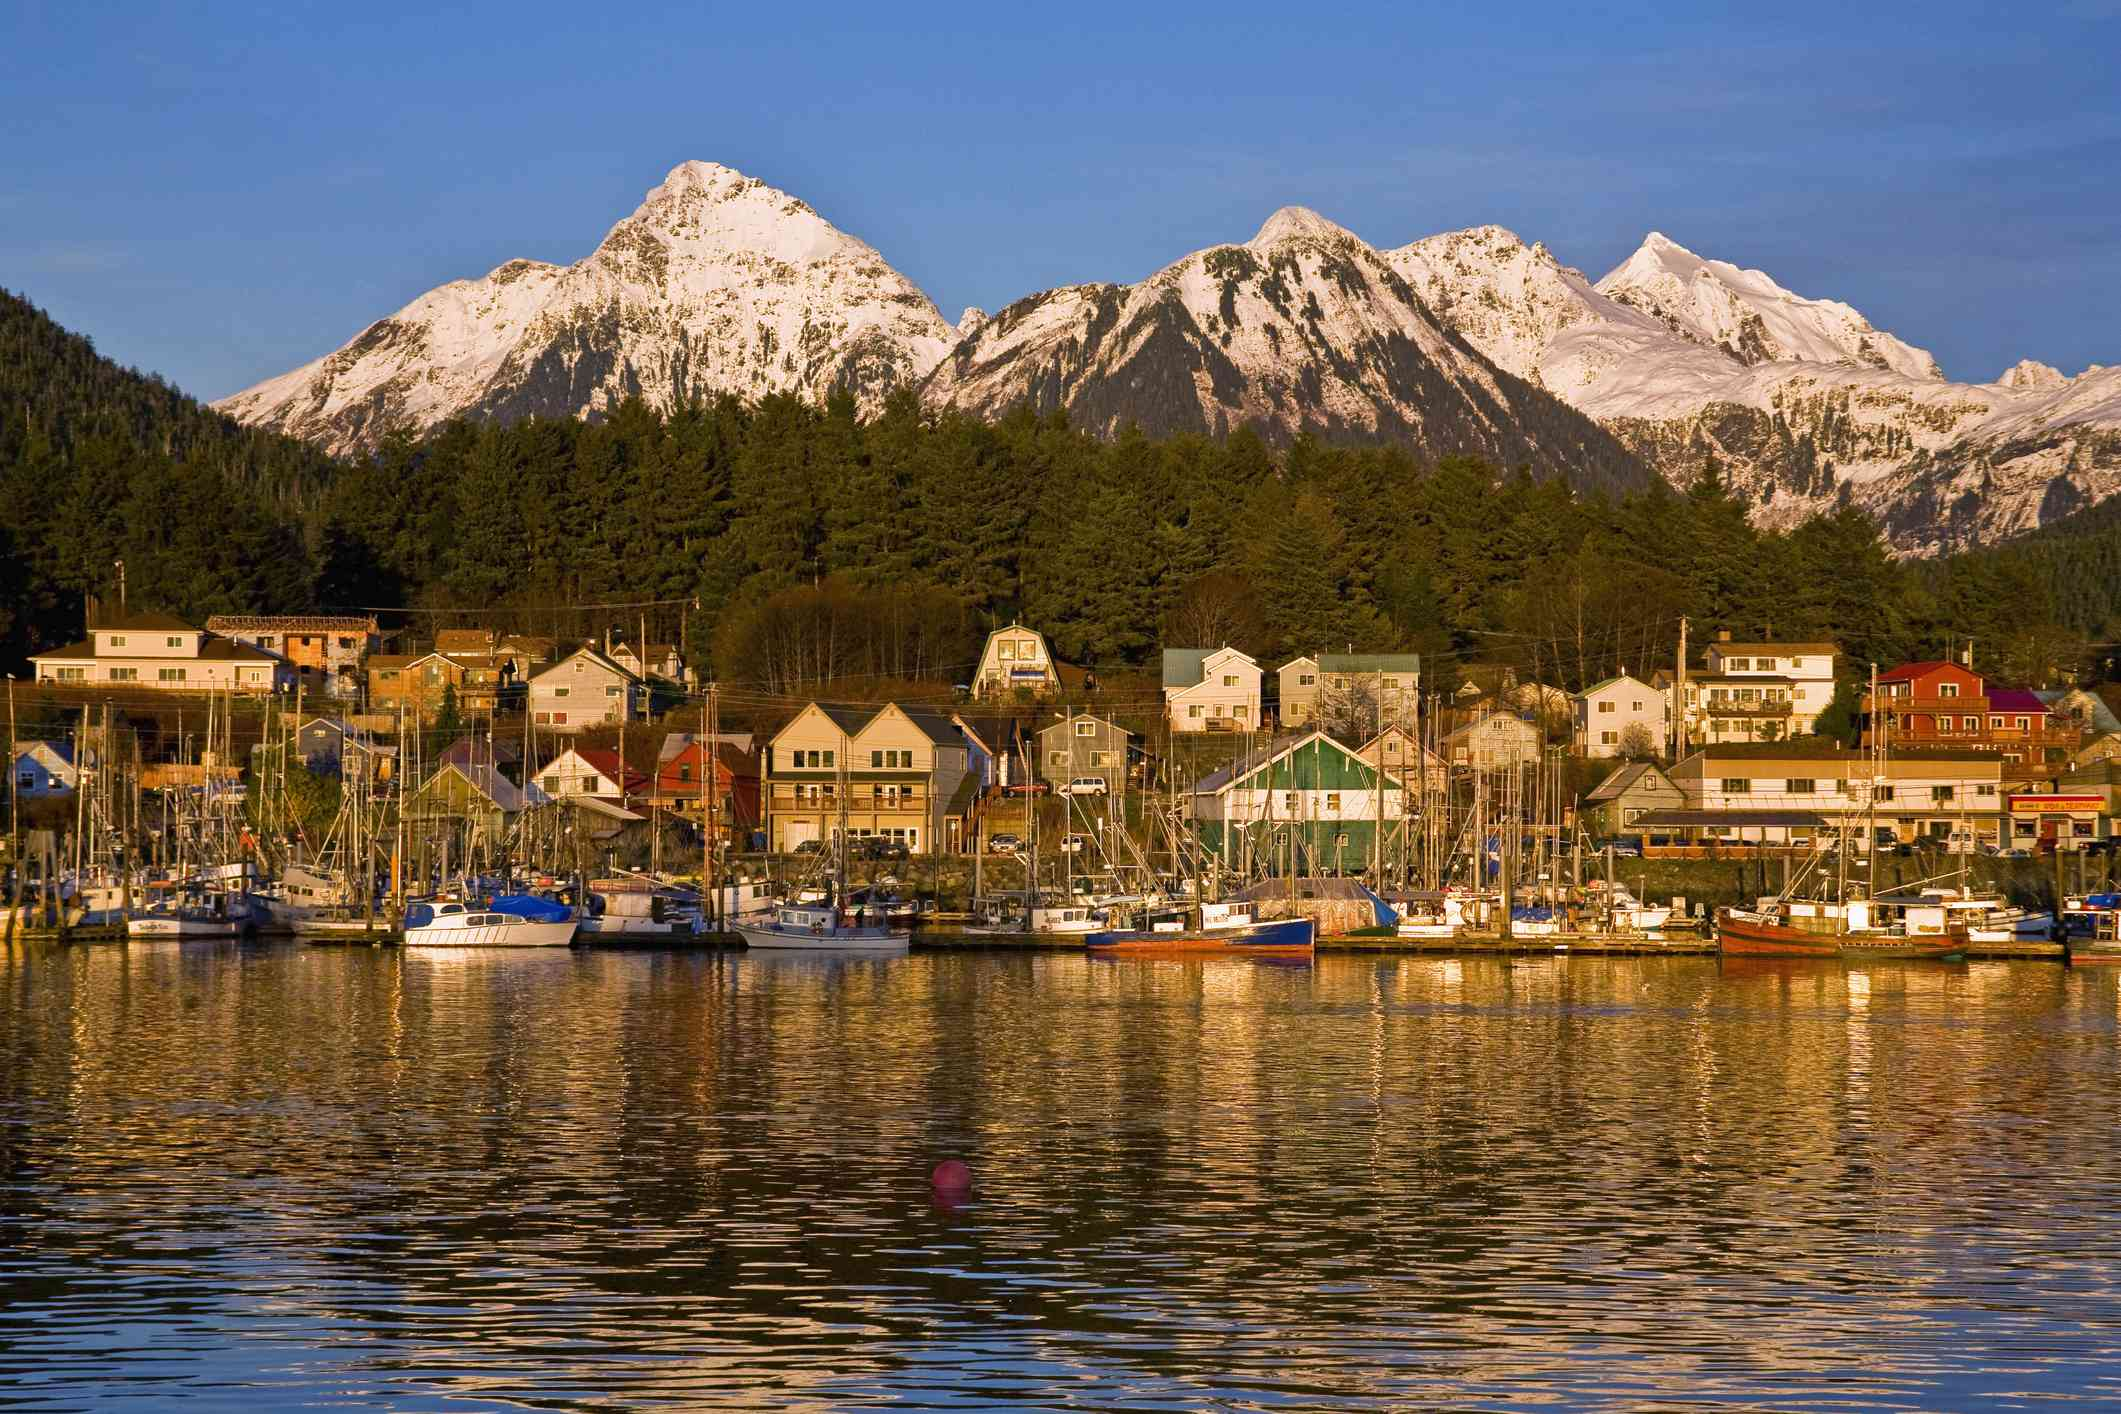 Downtown Sitka and small boat harbor with Arrowhead Peak in the background